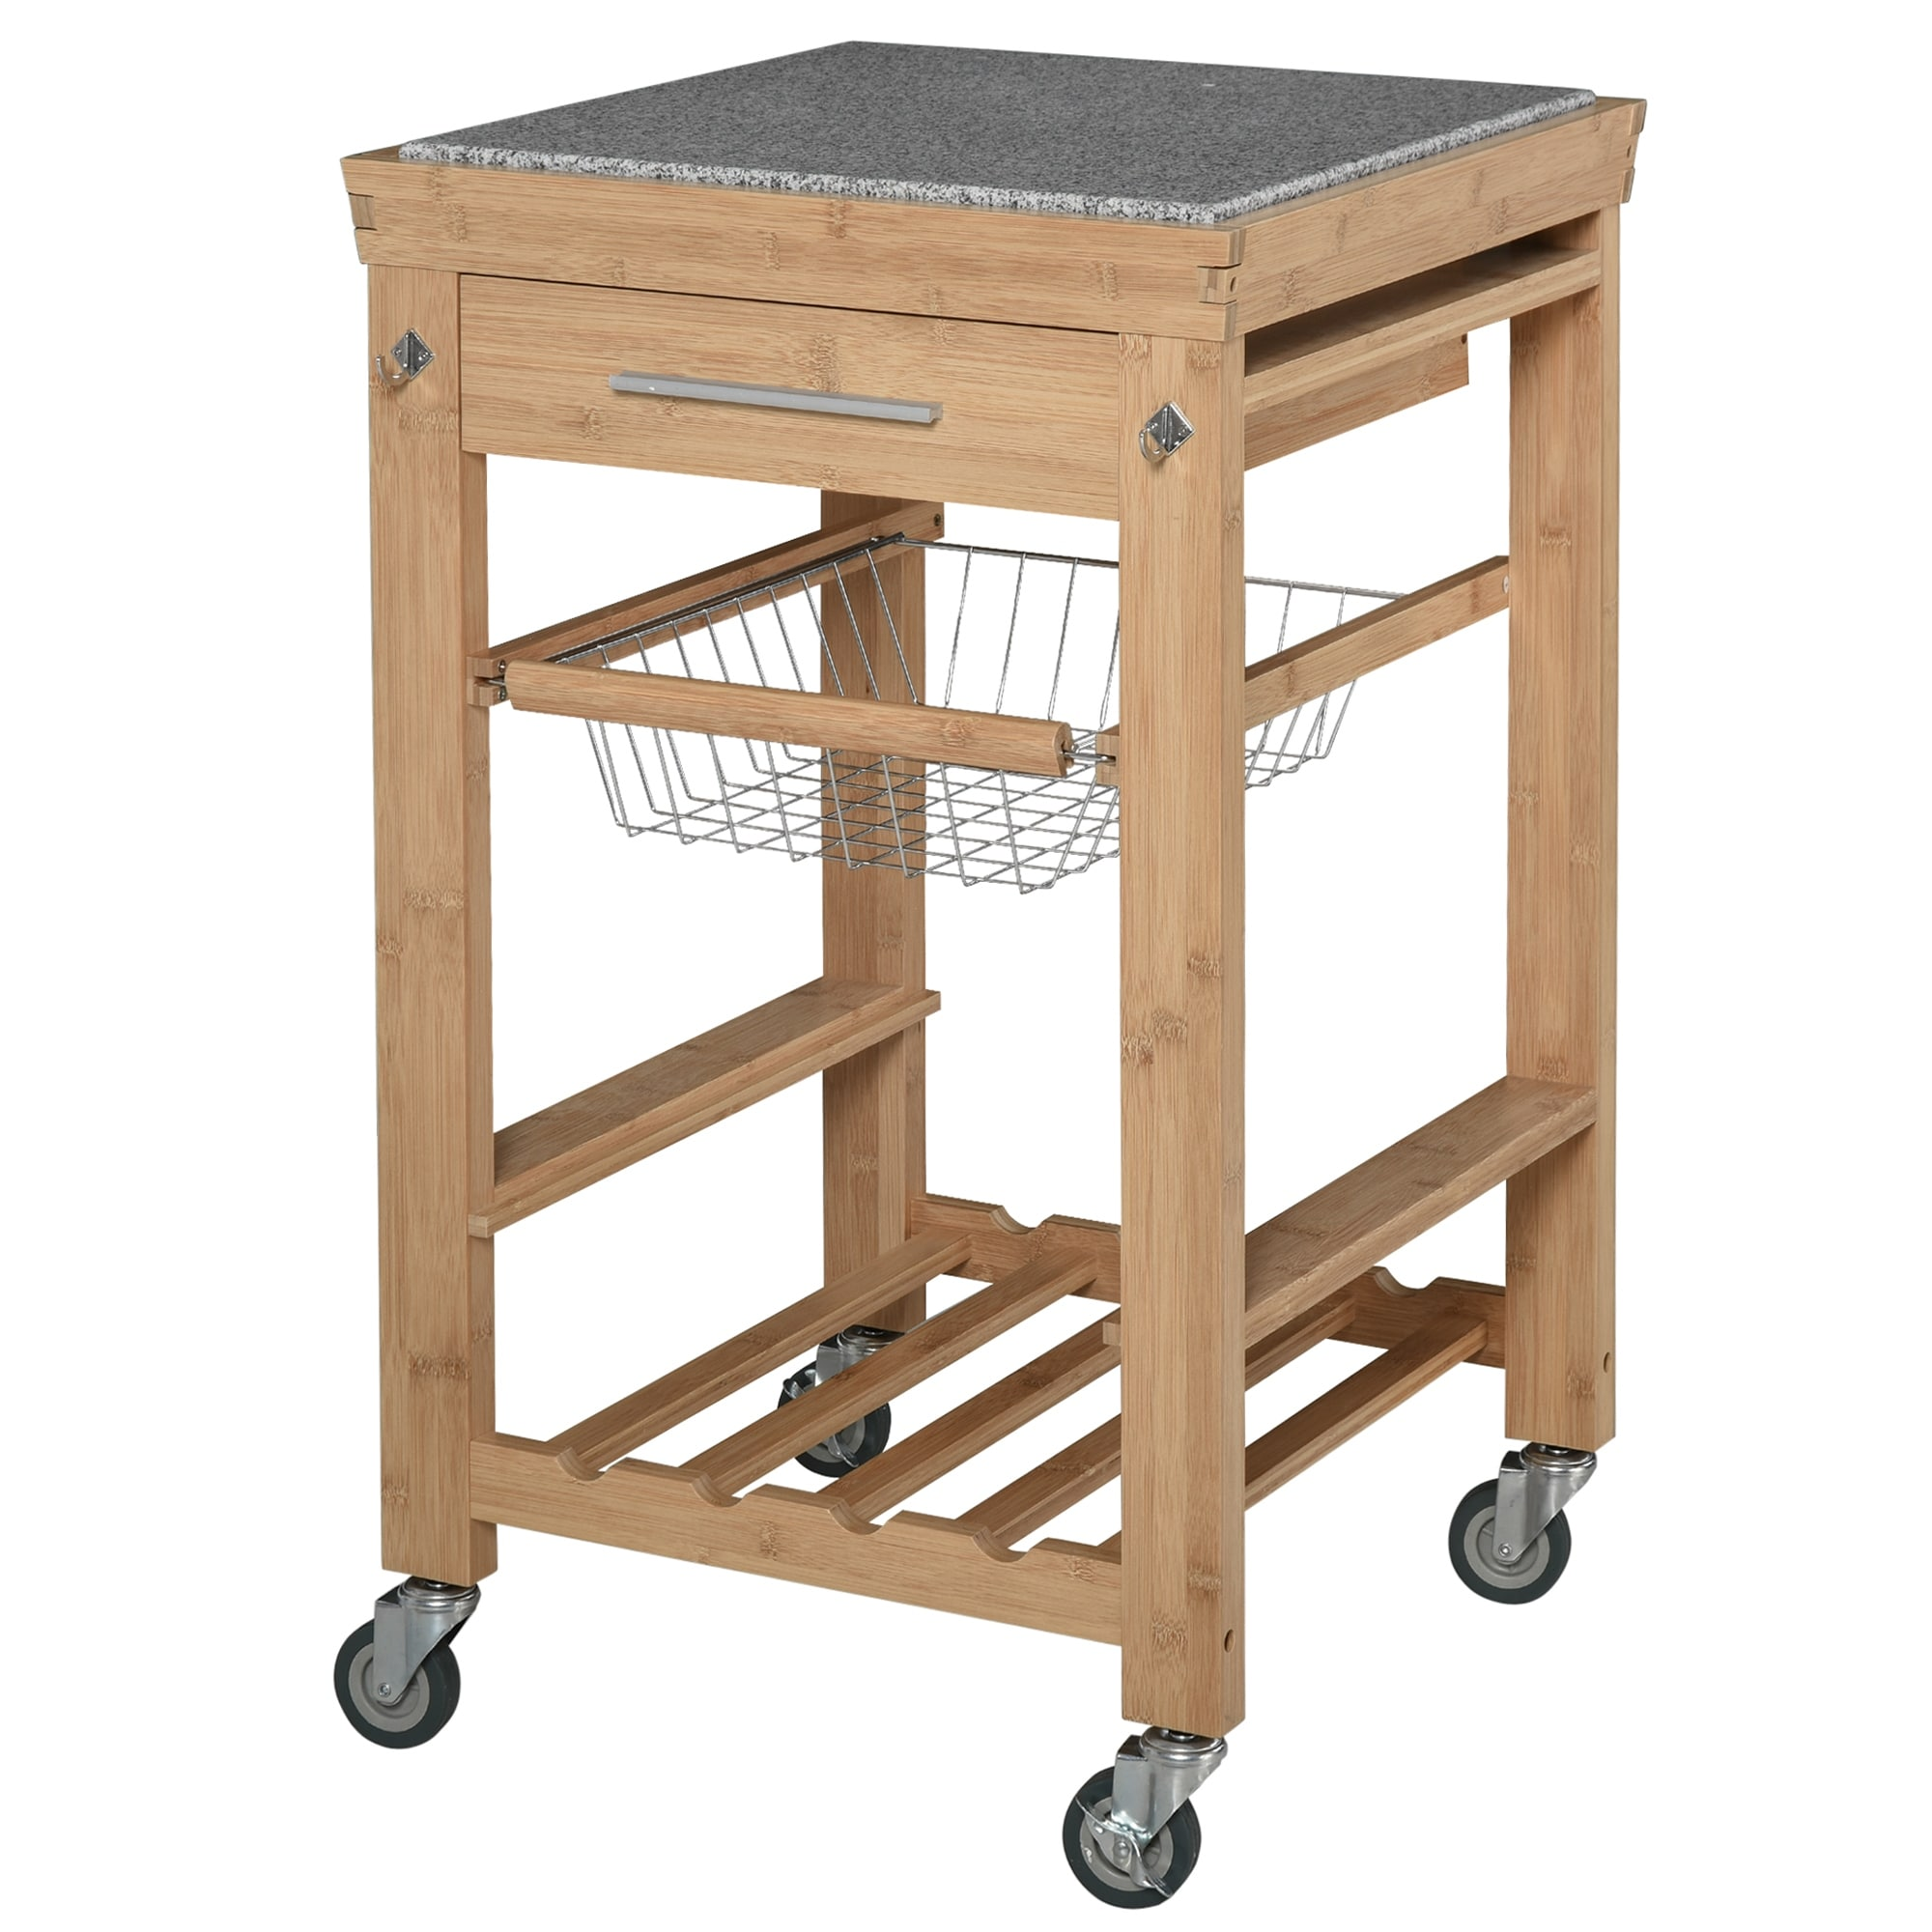 Homcom Bamboo Rolling Kitchen Island Trolley Storage Cart With Granite Top A Slide Out Basket Wine Storage Rack Overstock 32270026